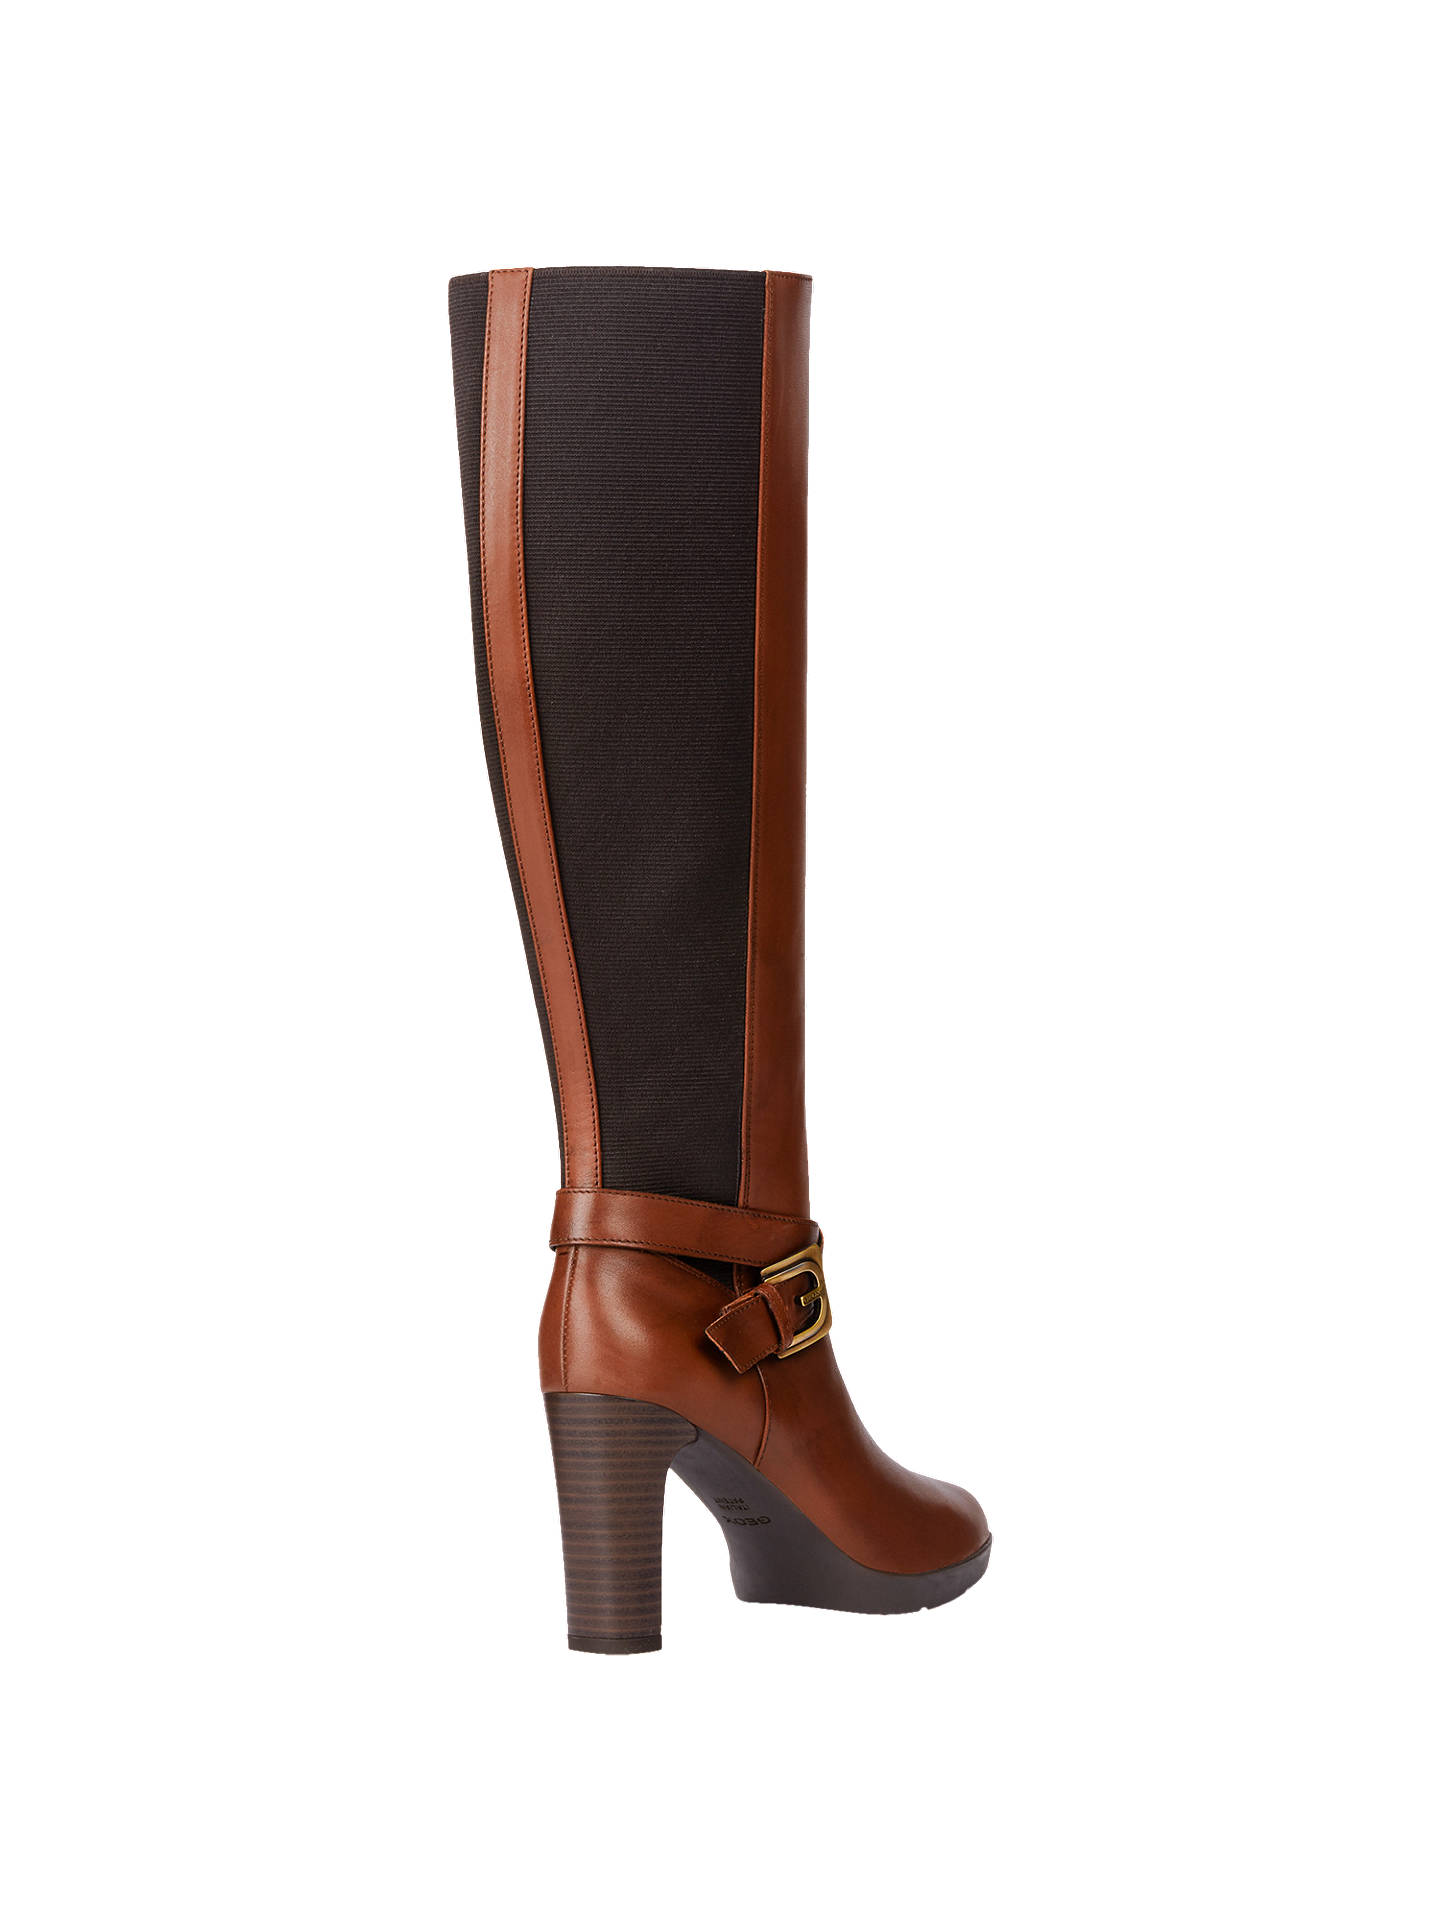 6f7208a766e Geox Women s Annya Buckle Block Heel Knee High Boots at John Lewis ...